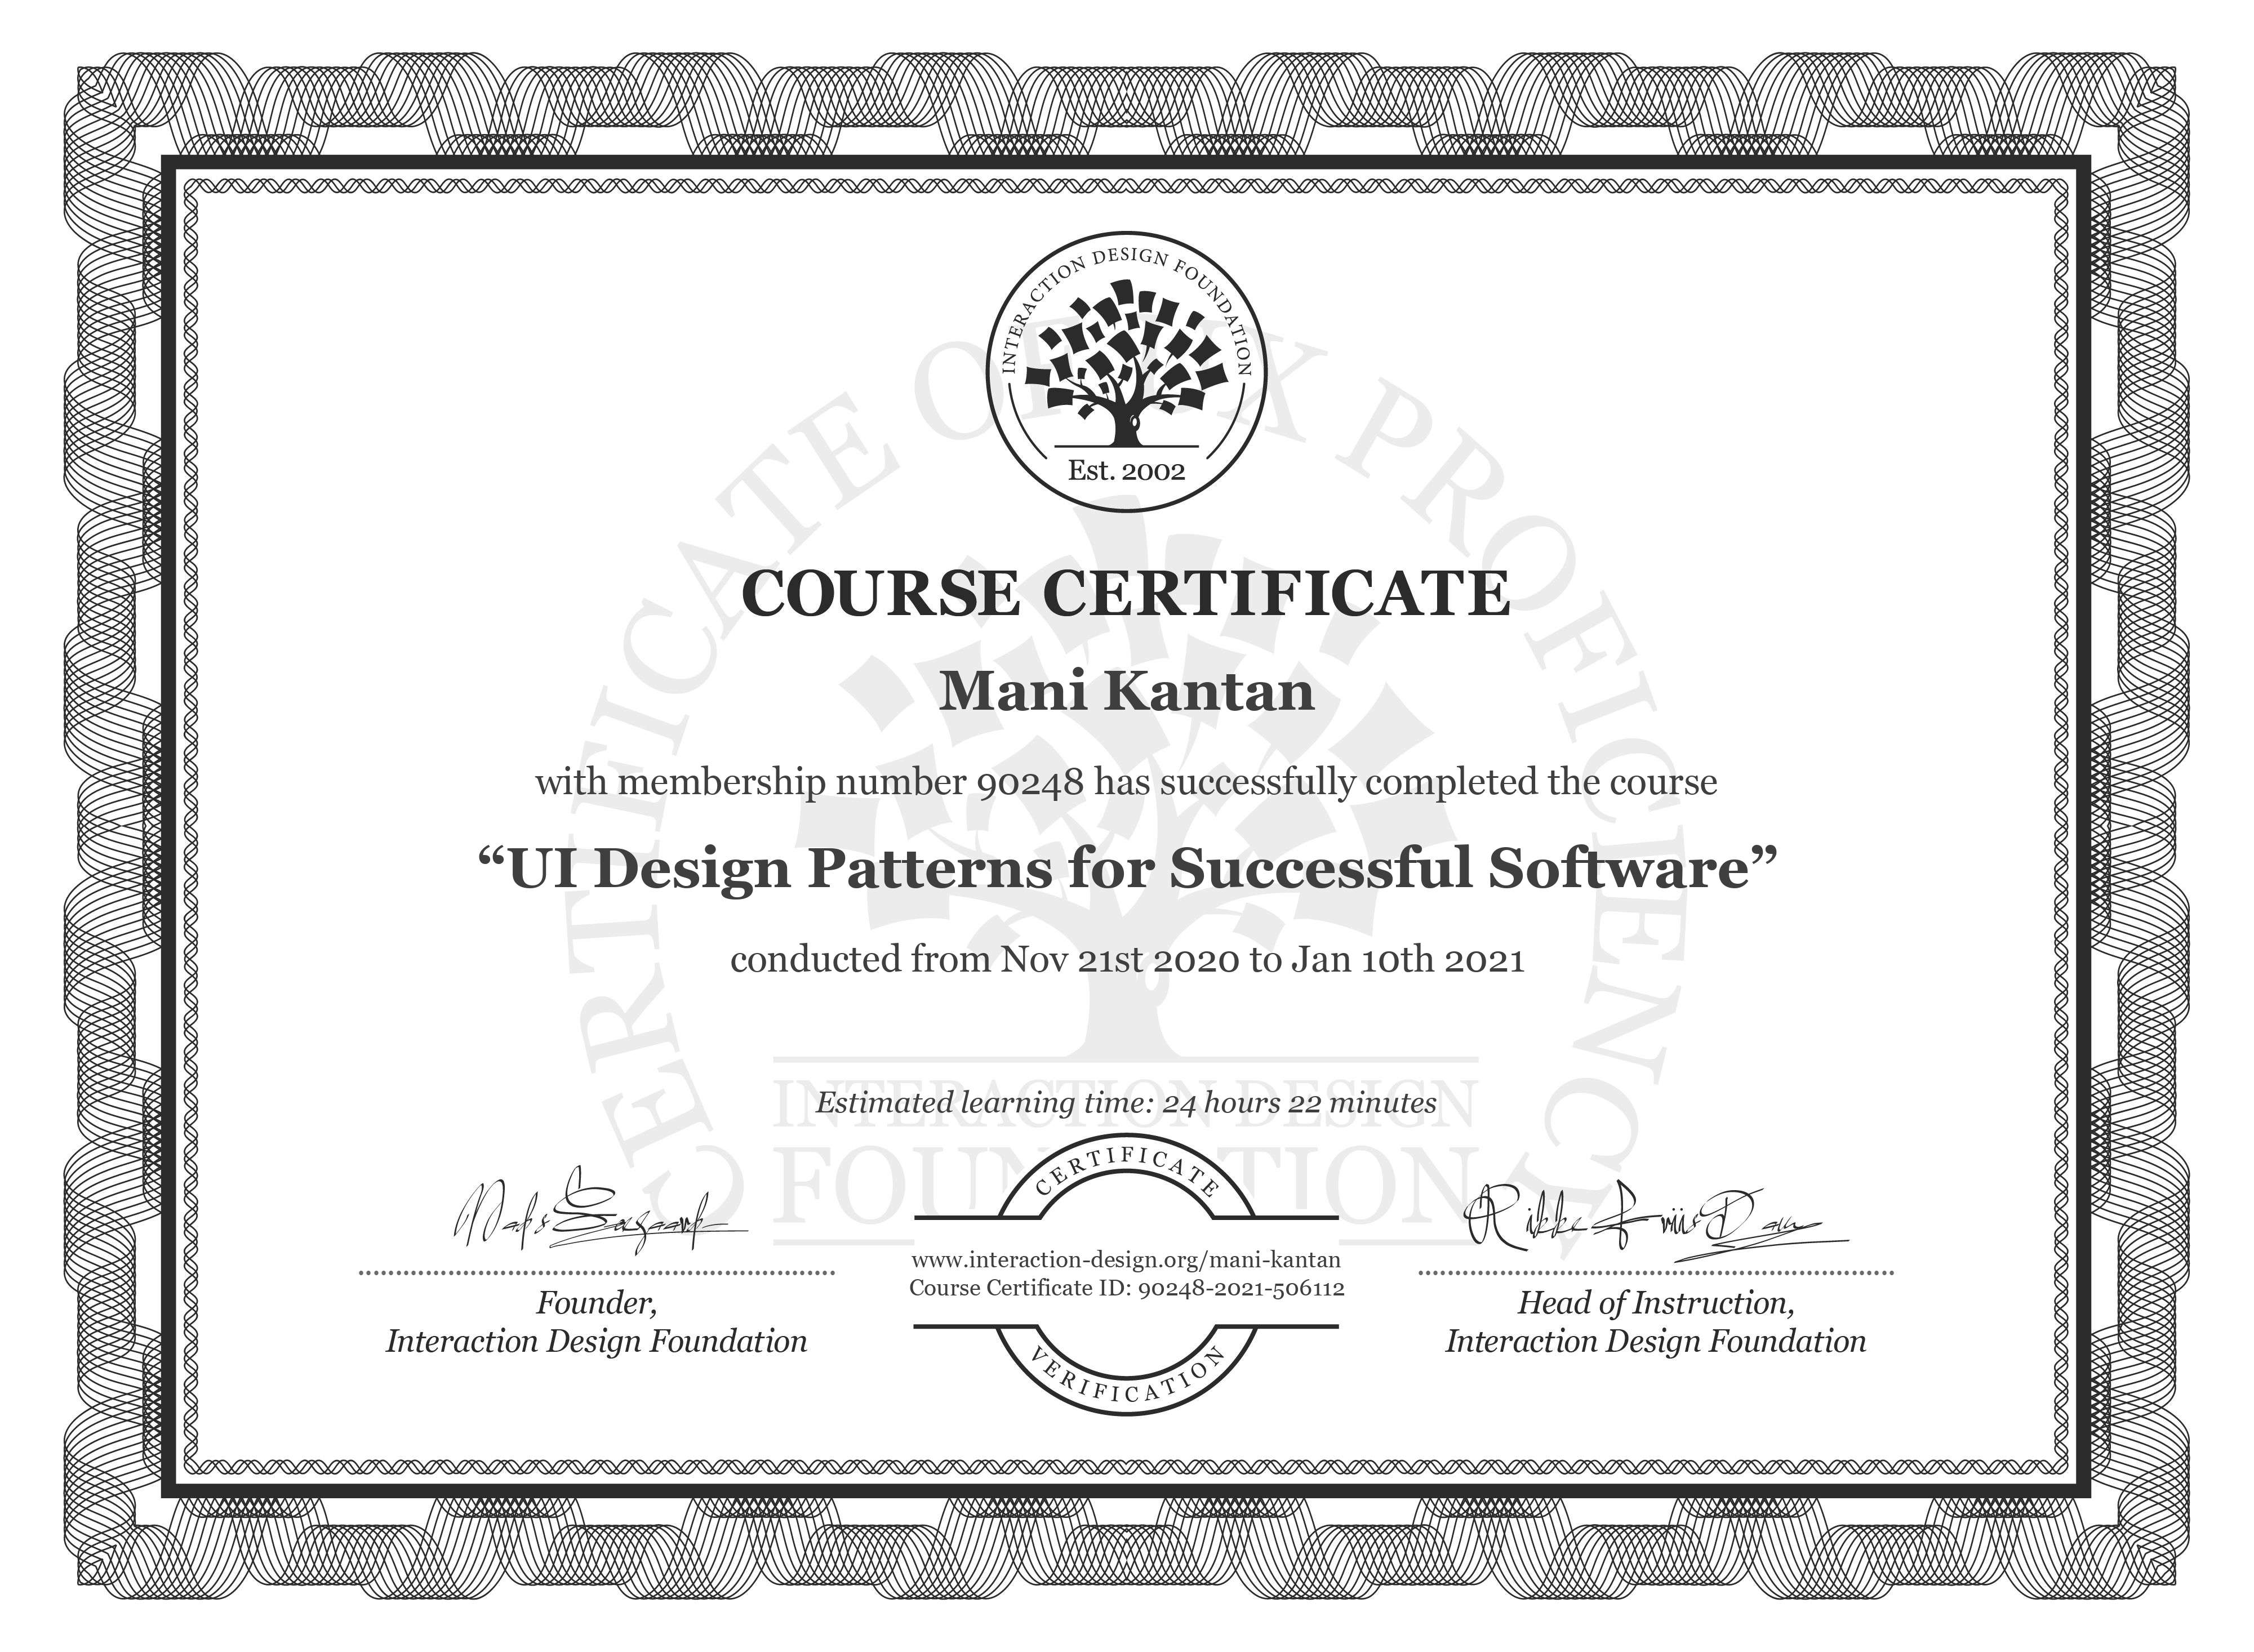 Mani Kantan's Course Certificate: UI Design Patterns for Successful Software